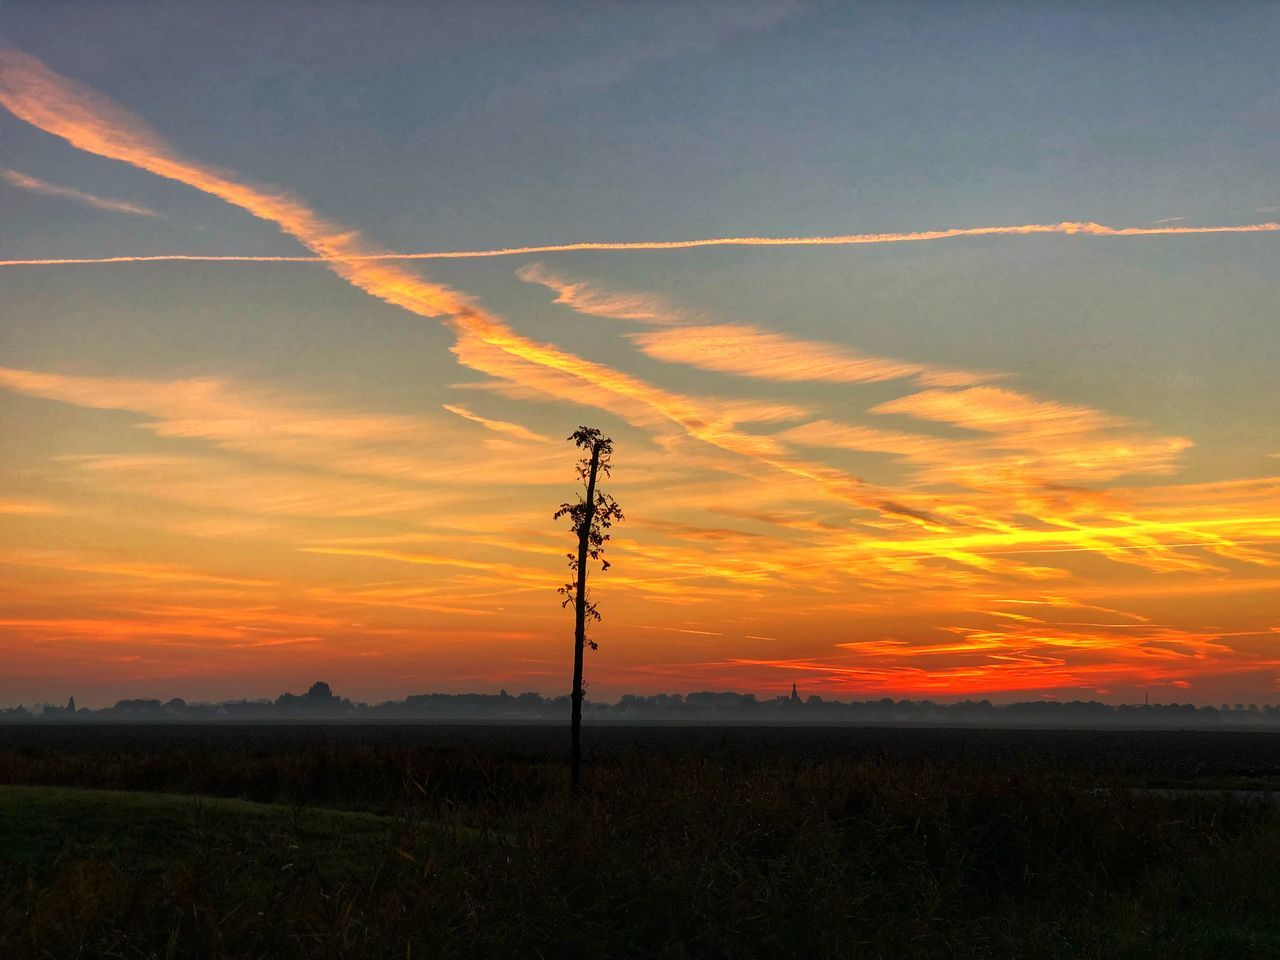 sunset, sky, beauty in nature, cloud - sky, scenics - nature, technology, landscape, land, field, tranquility, tranquil scene, orange color, environment, no people, silhouette, connection, nature, idyllic, electricity, plant, vapor trail, power supply, outdoors, telephone line